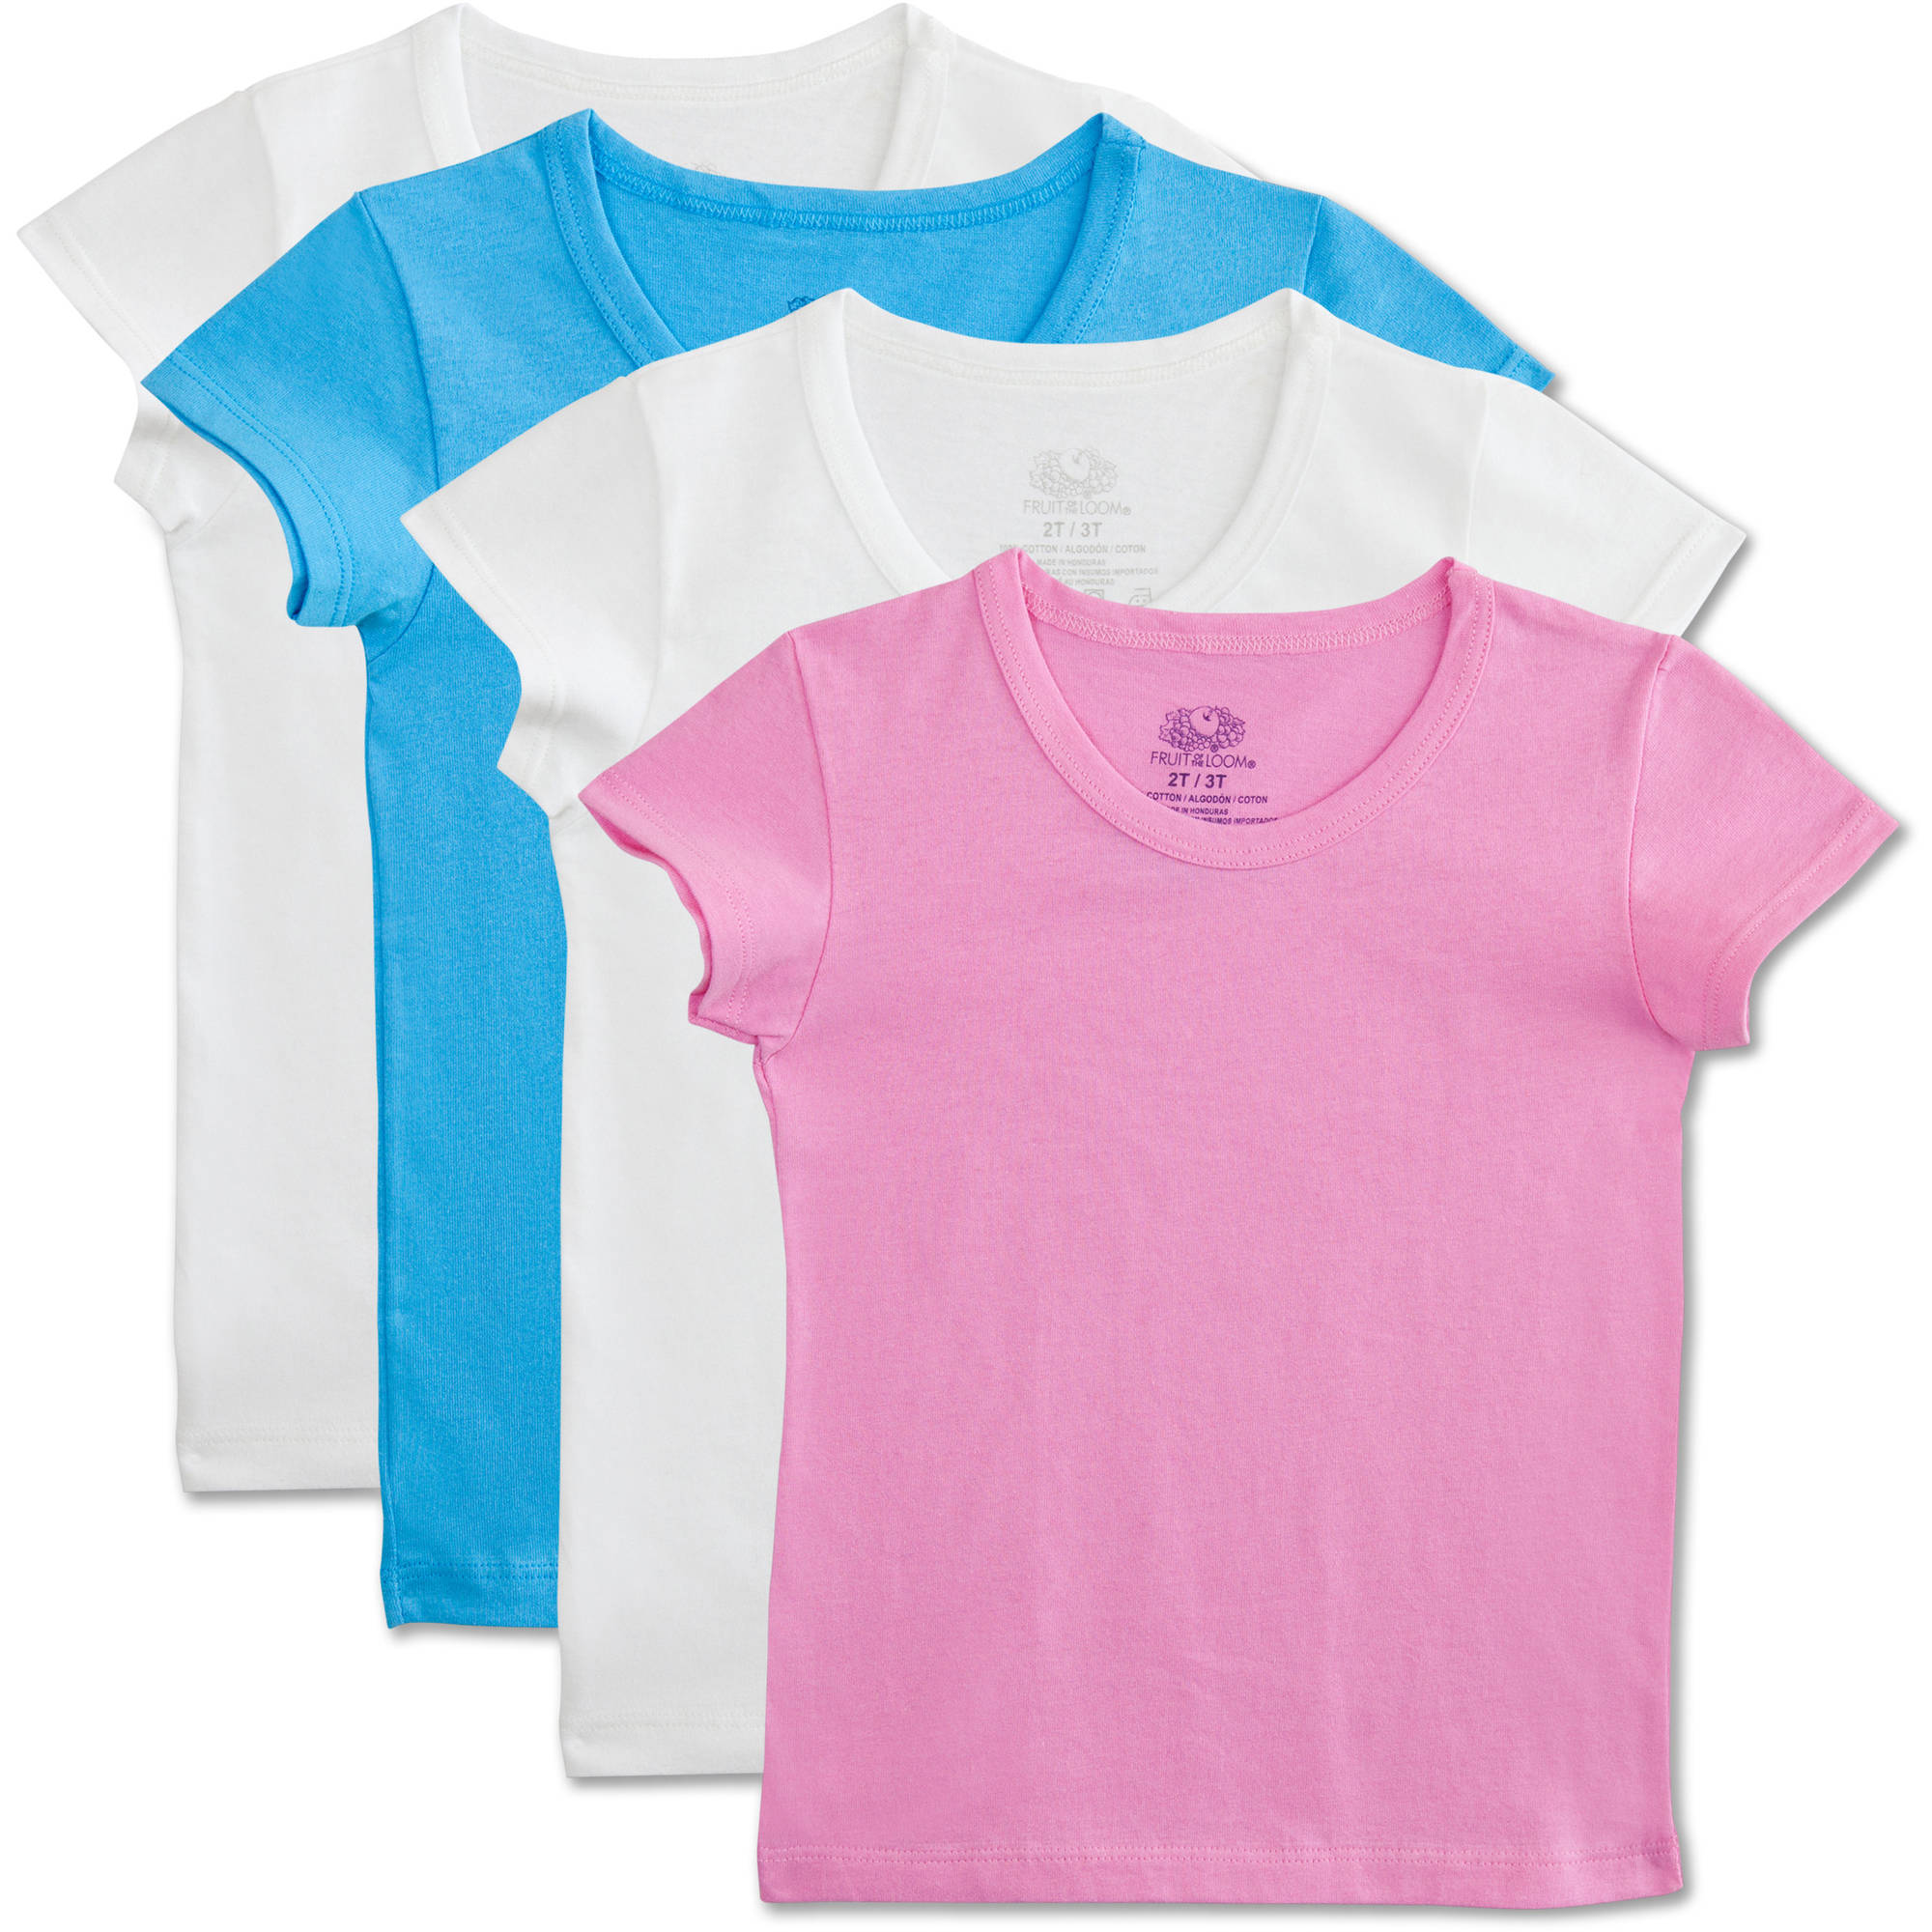 Fruit of the Loom Toddler Girls 100% Cotton T-Shirts, 4 Pack